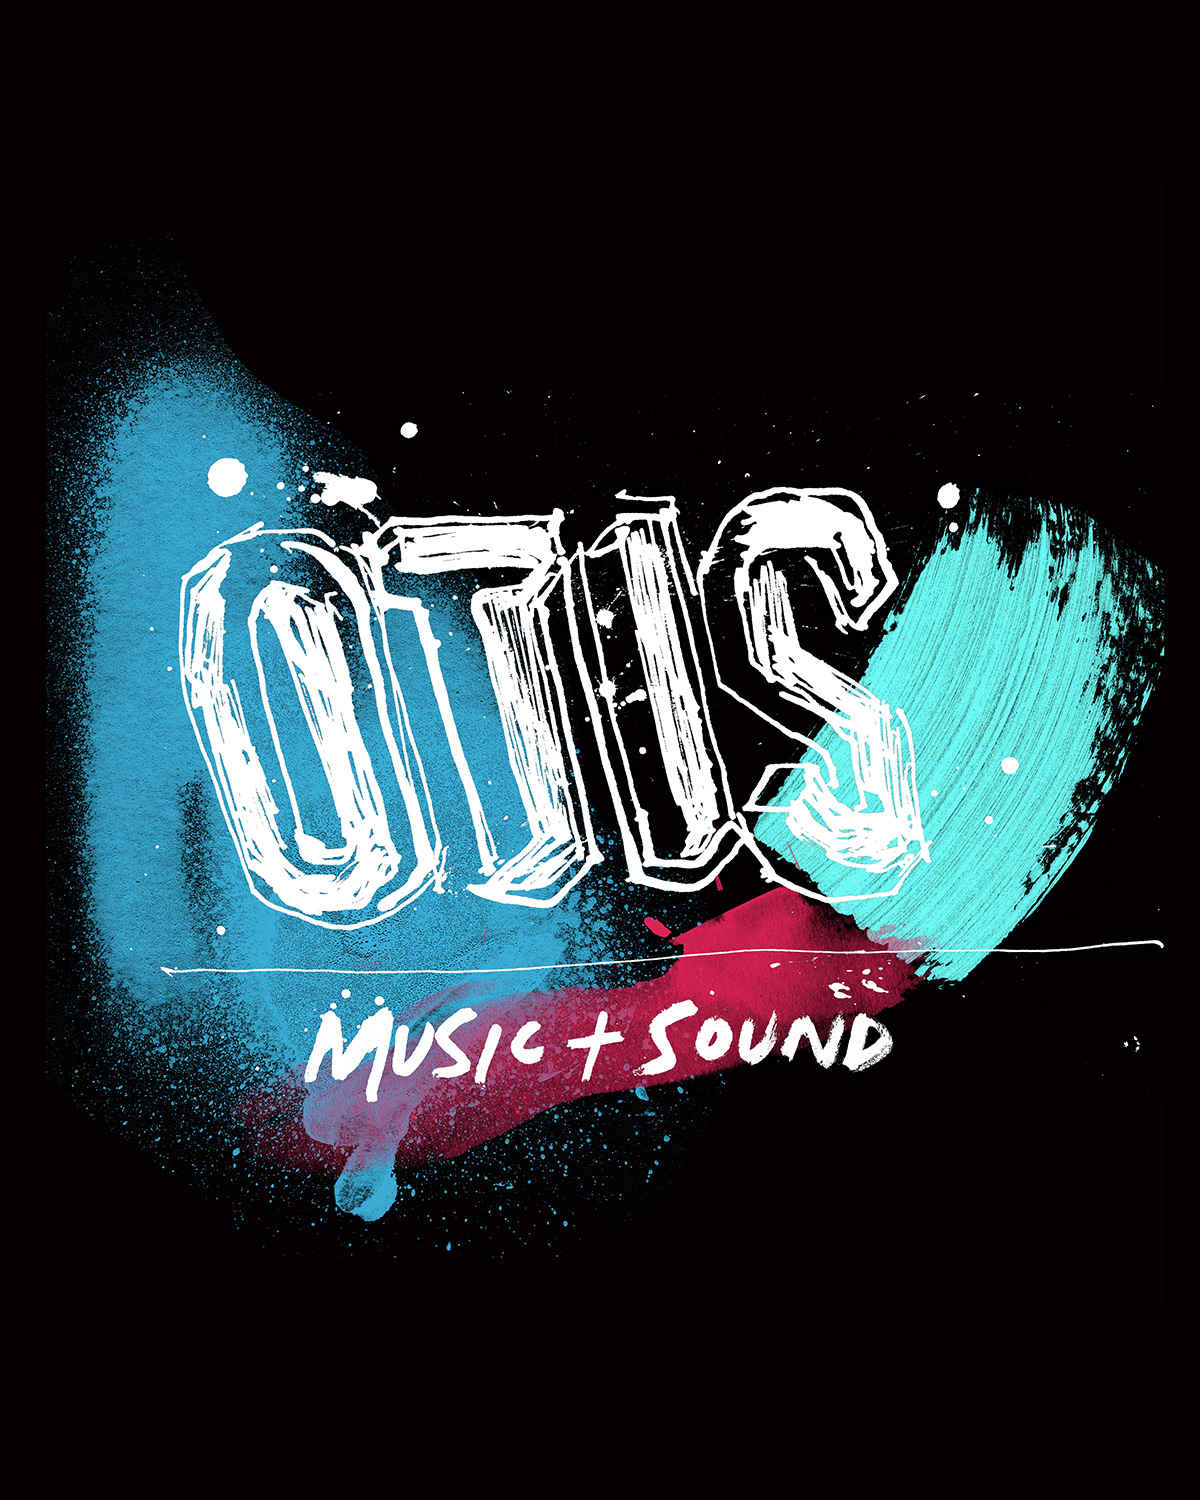 Otis studio music sydney australia, hand drawn, painted illustration in acrylic paint, ink, spray paint and watercolour